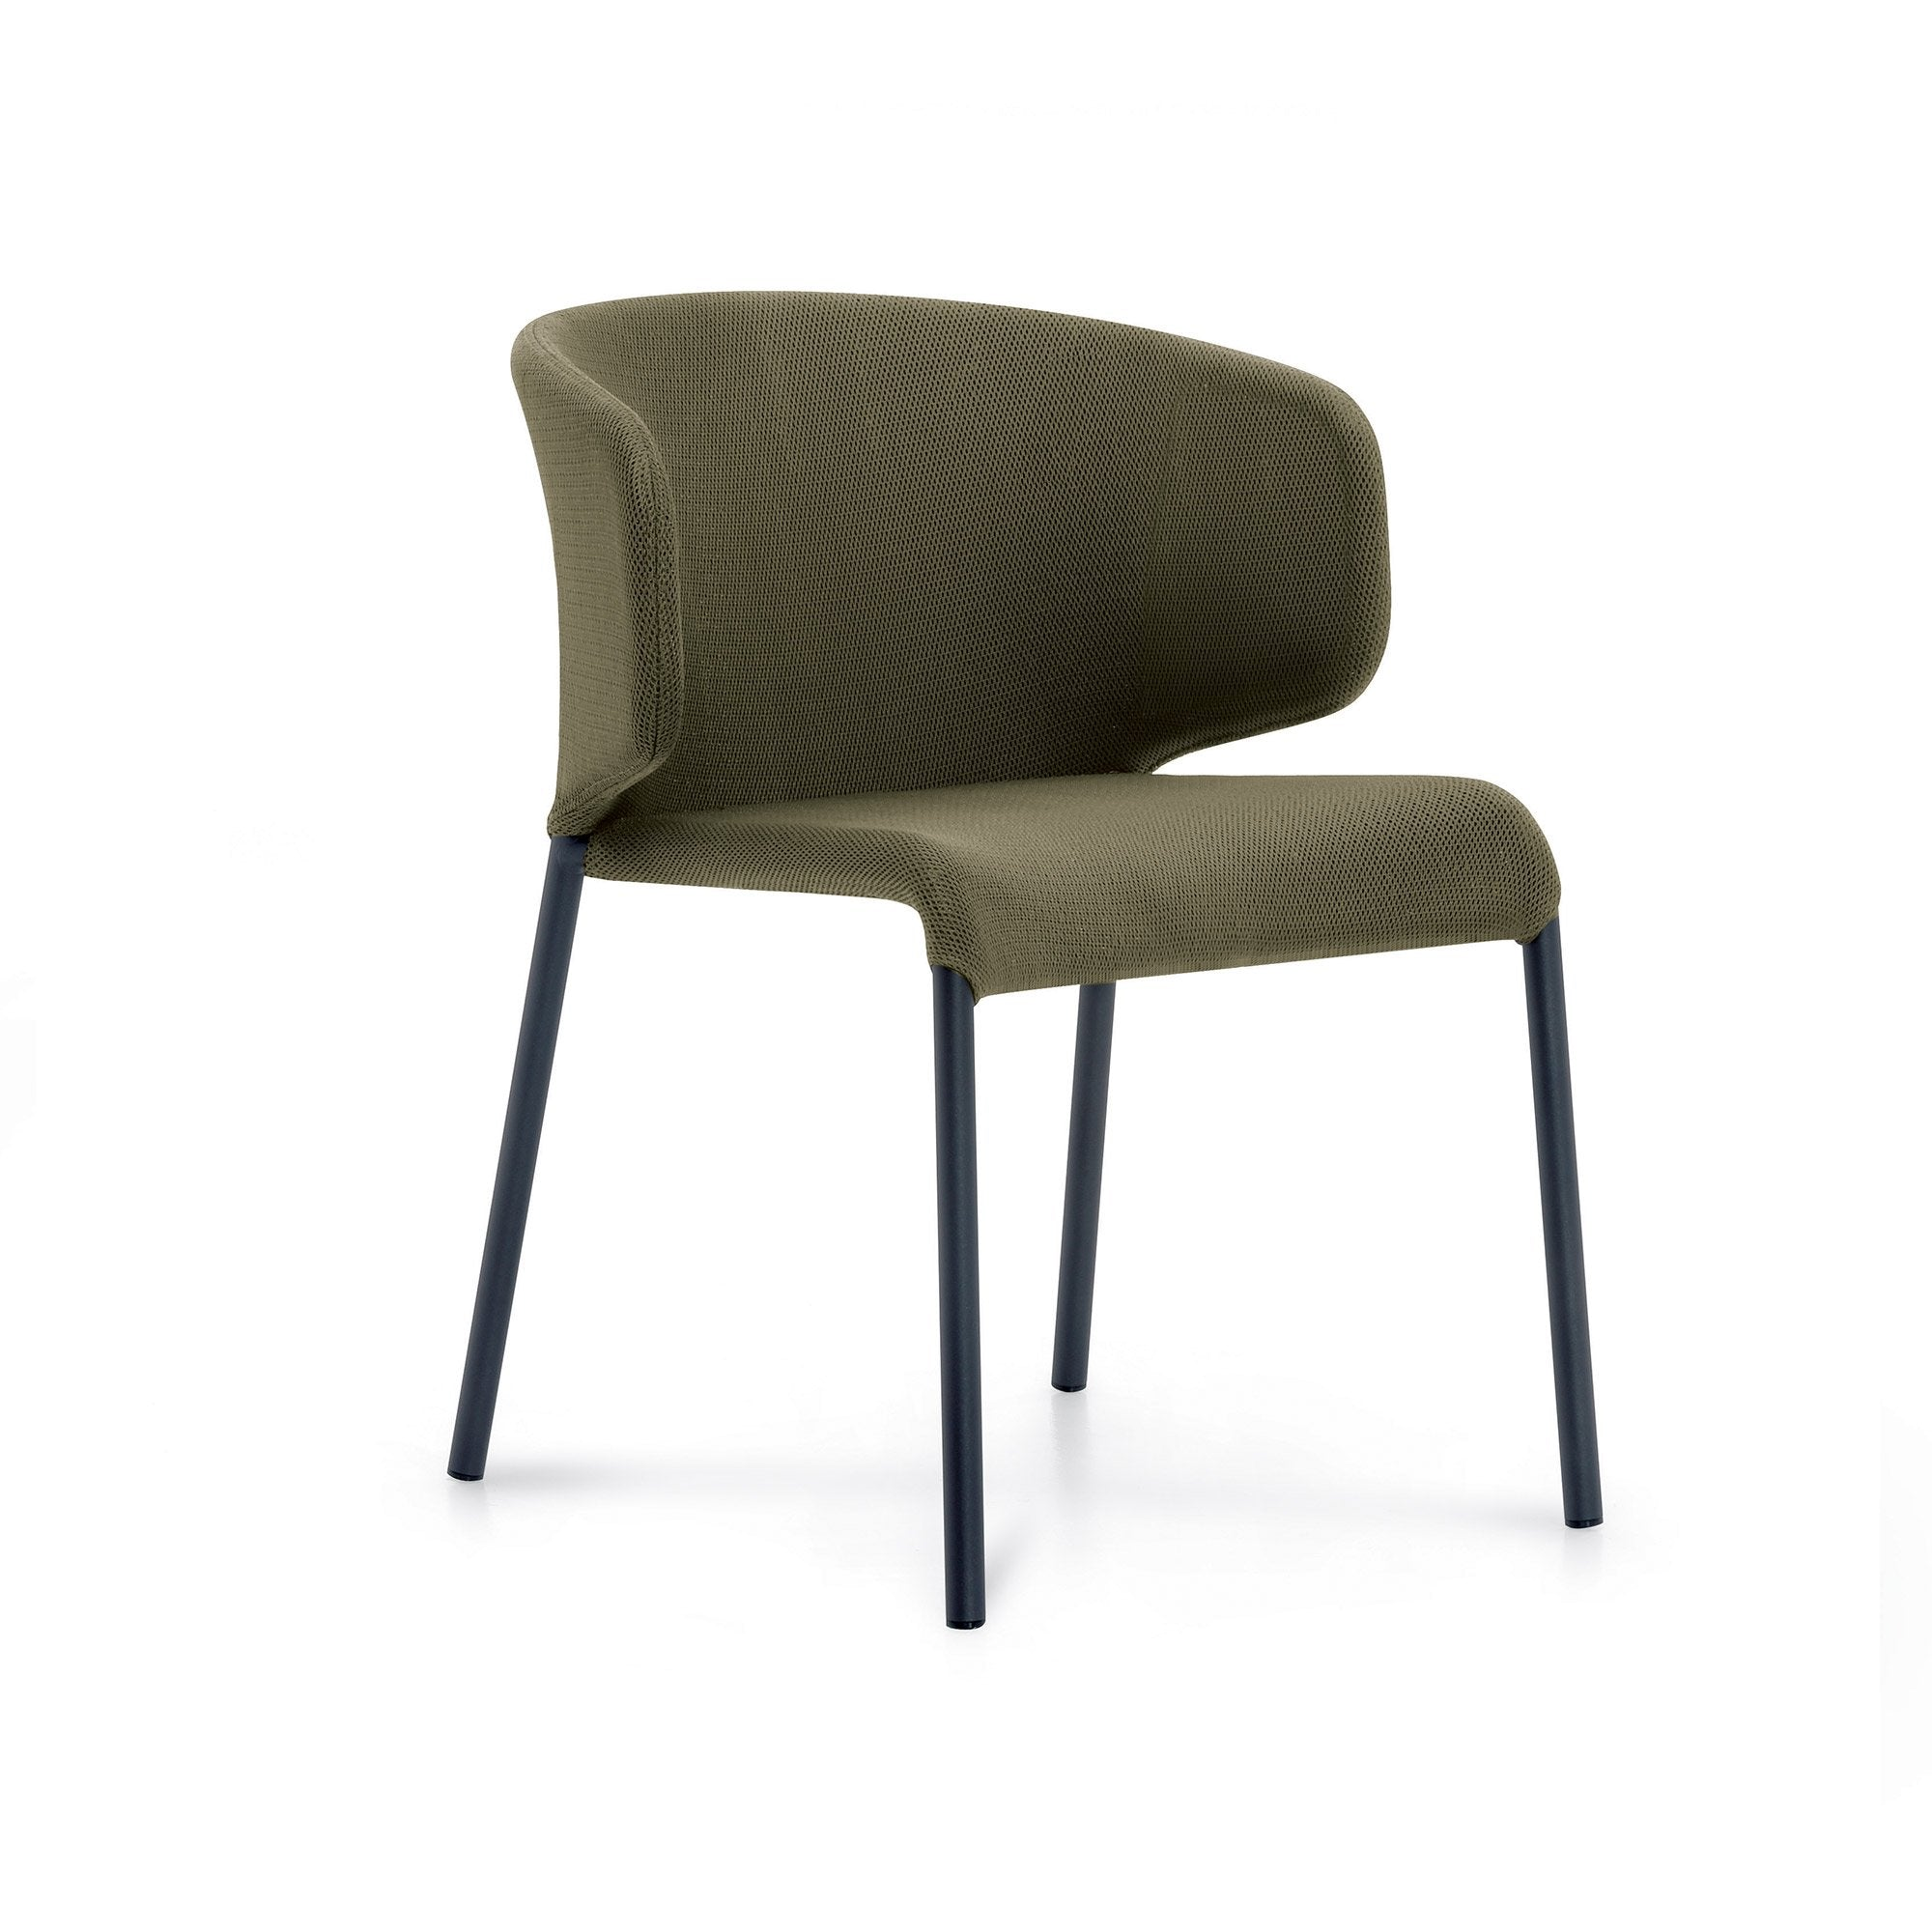 Double 011 Chair